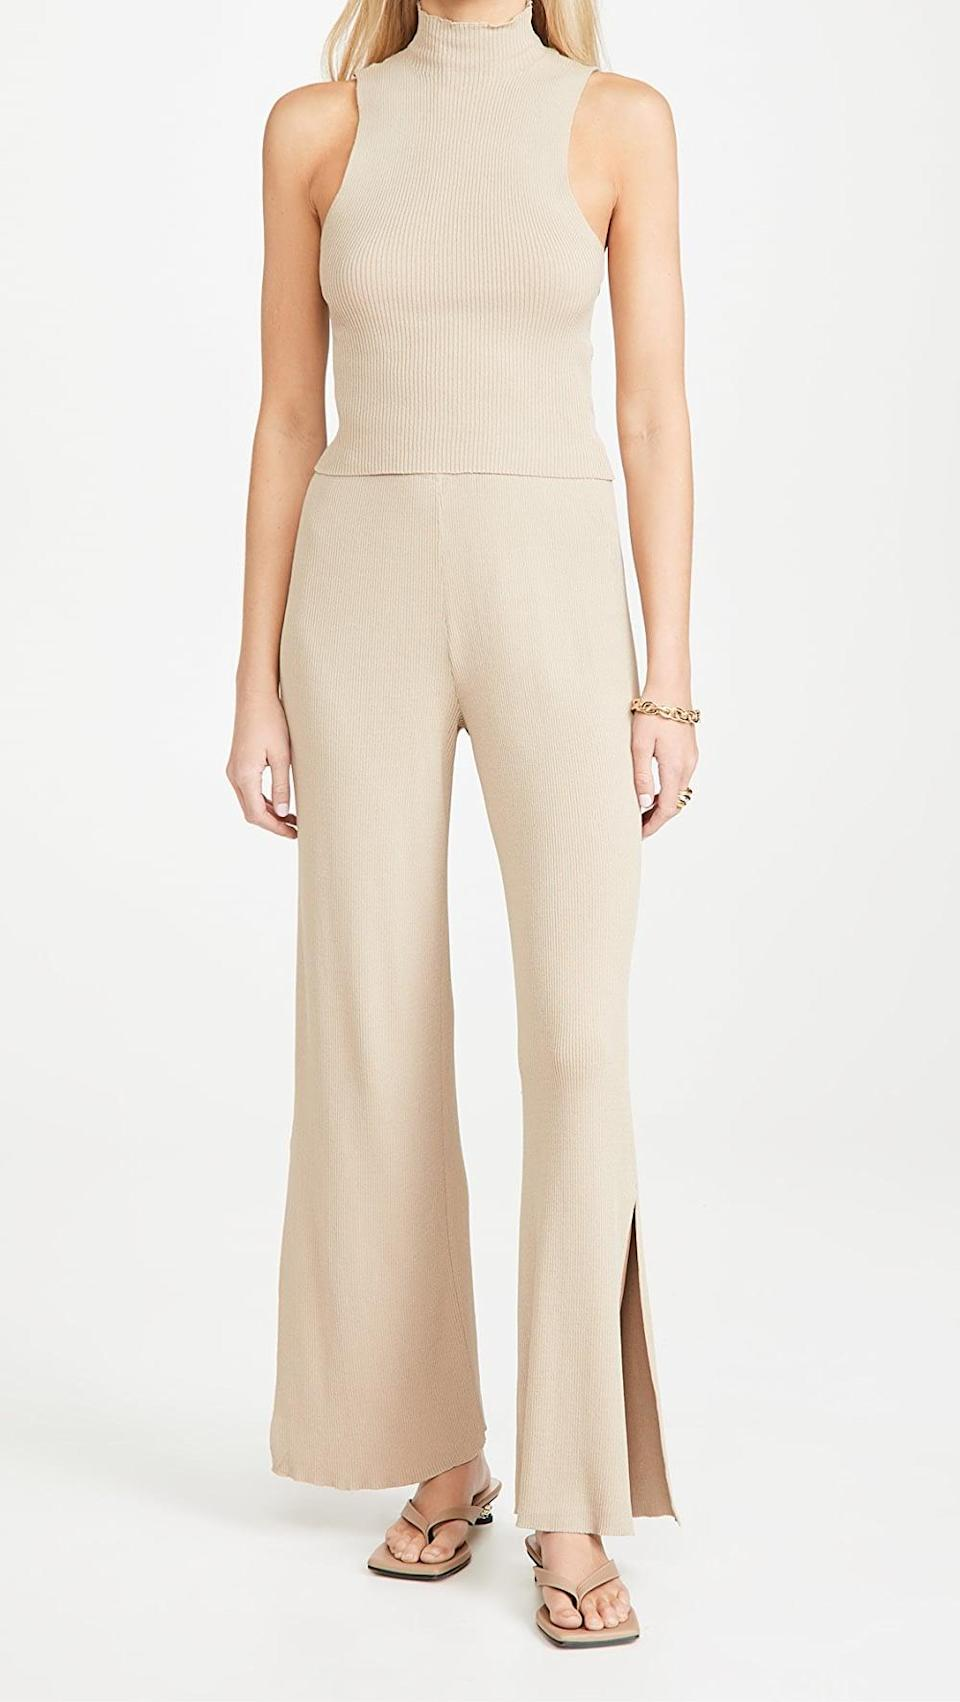 <p>These <span>Lioness New York City Pants</span> ($62, originally $89) are so flattering and chic. Pair them with a matching second-skin top.</p>